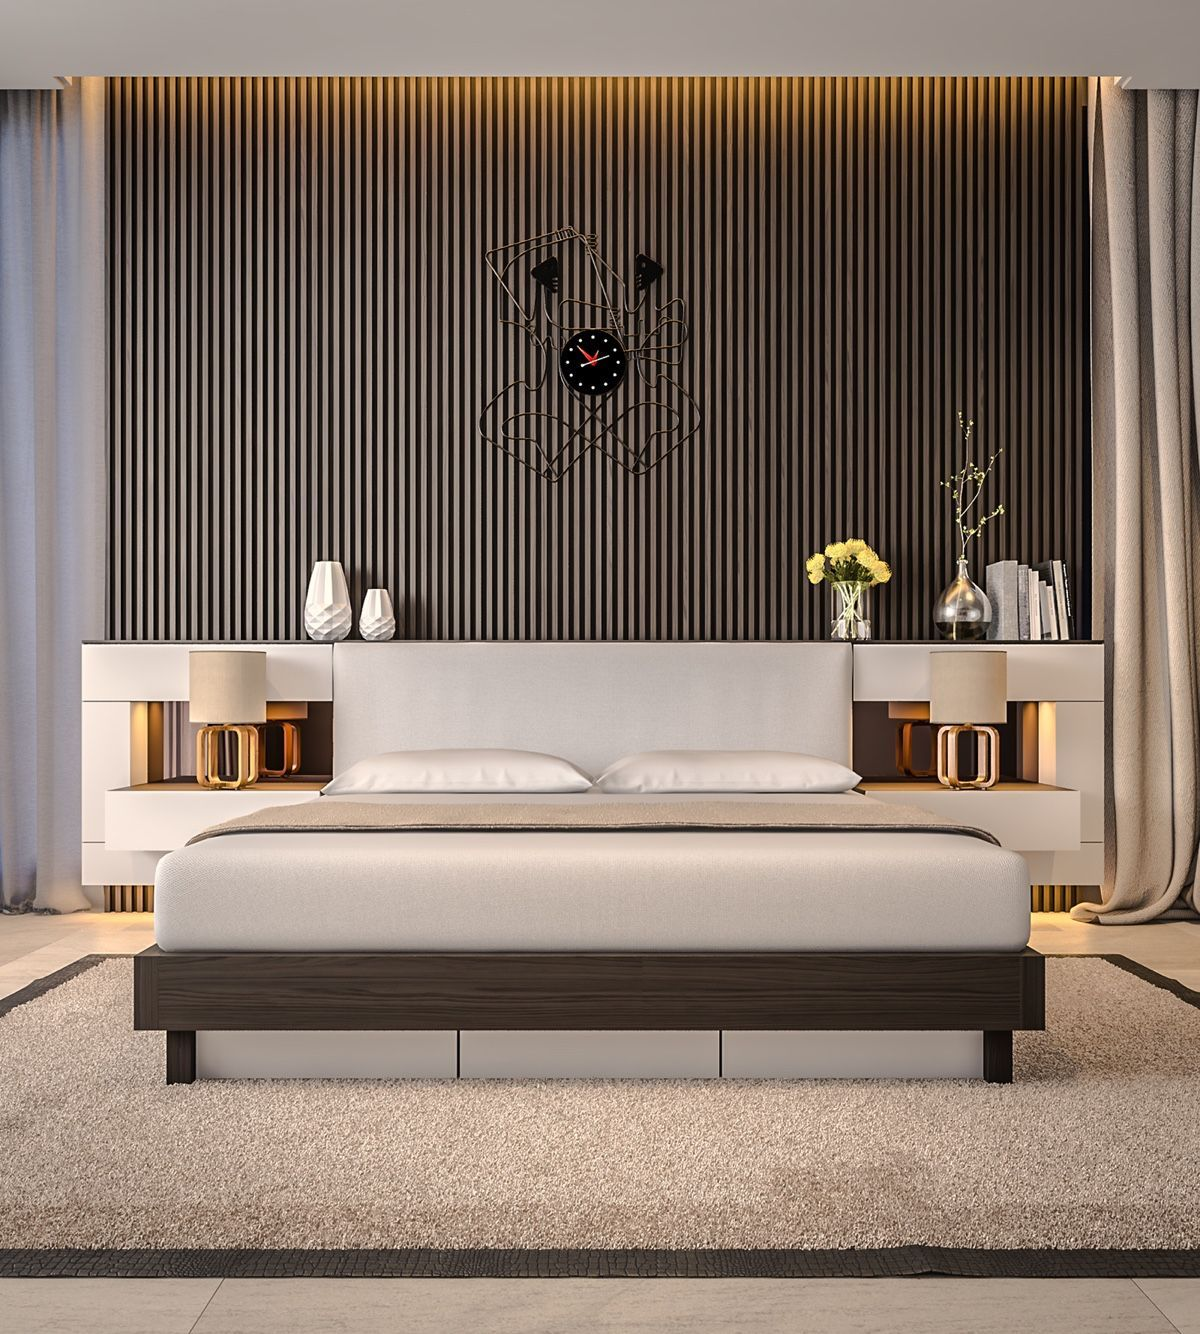 3 Types Of Cool Bedroom Designs Which Use Slats For Accent Walls Decor Ideas Luxurious Bedrooms Modern Bedroom Design Modern Master Bedroom